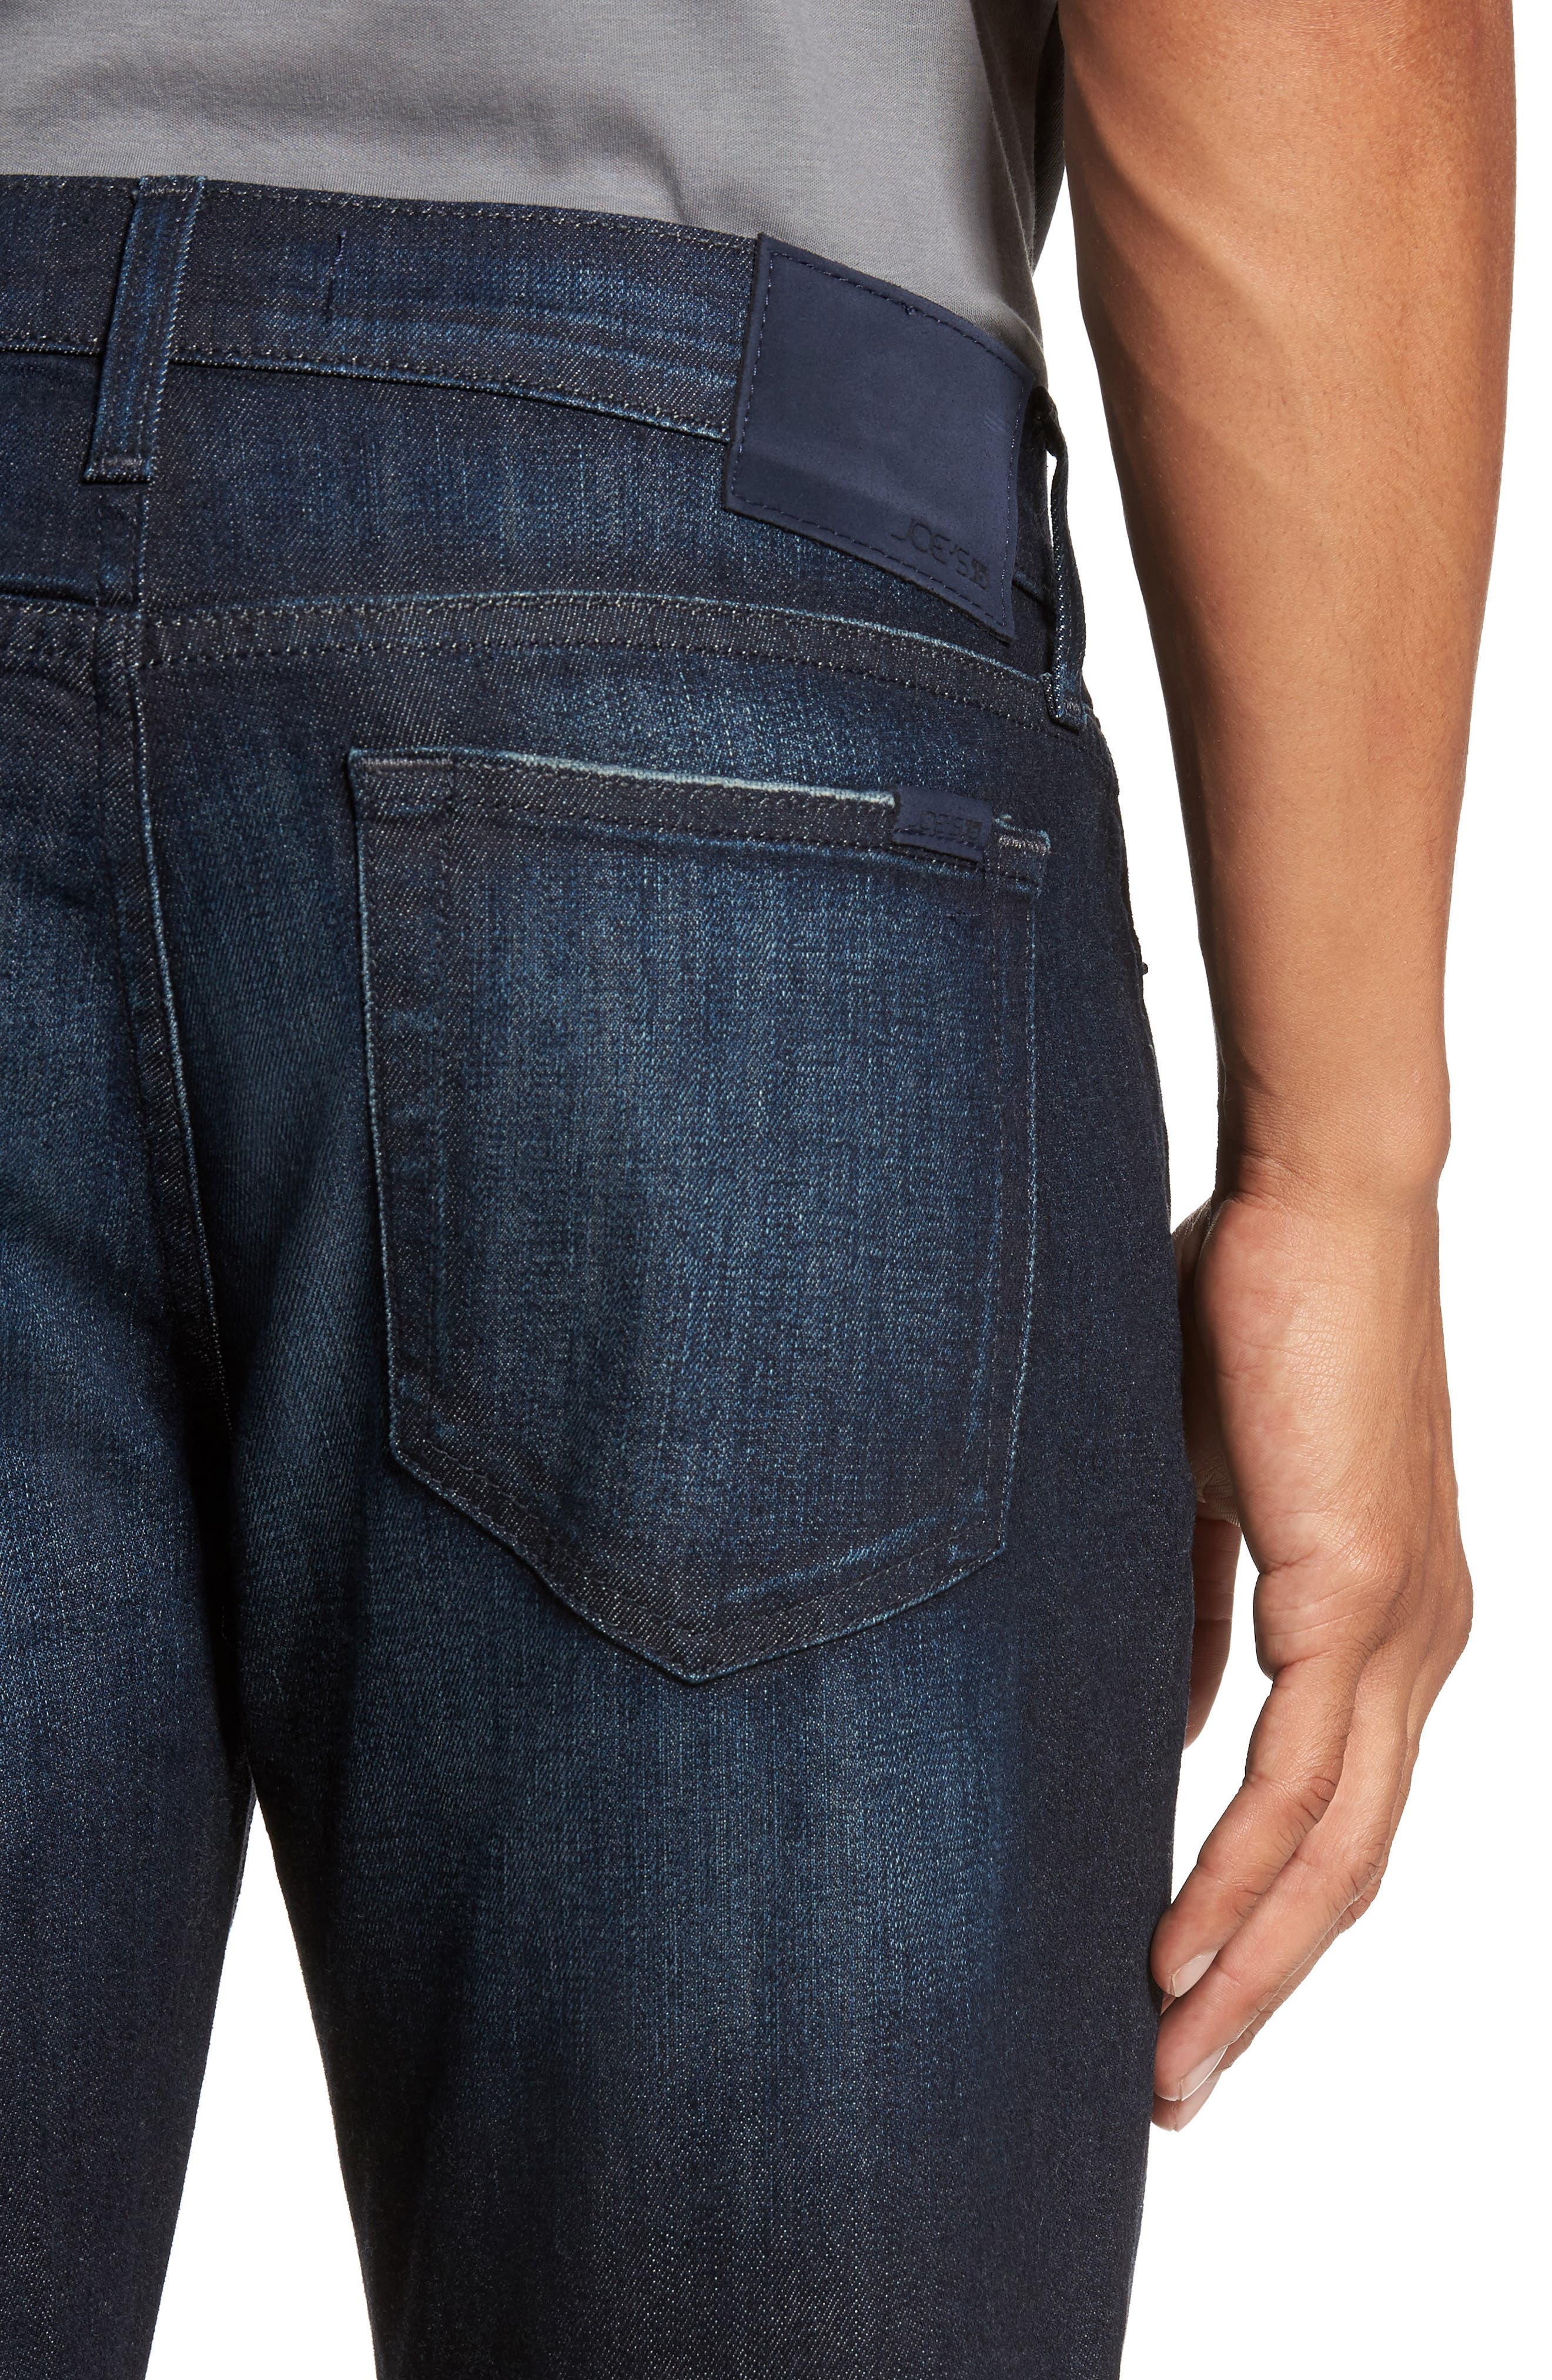 Brixton Slim Straight Fit Jeans,                             Alternate thumbnail 4, color,                             Maag